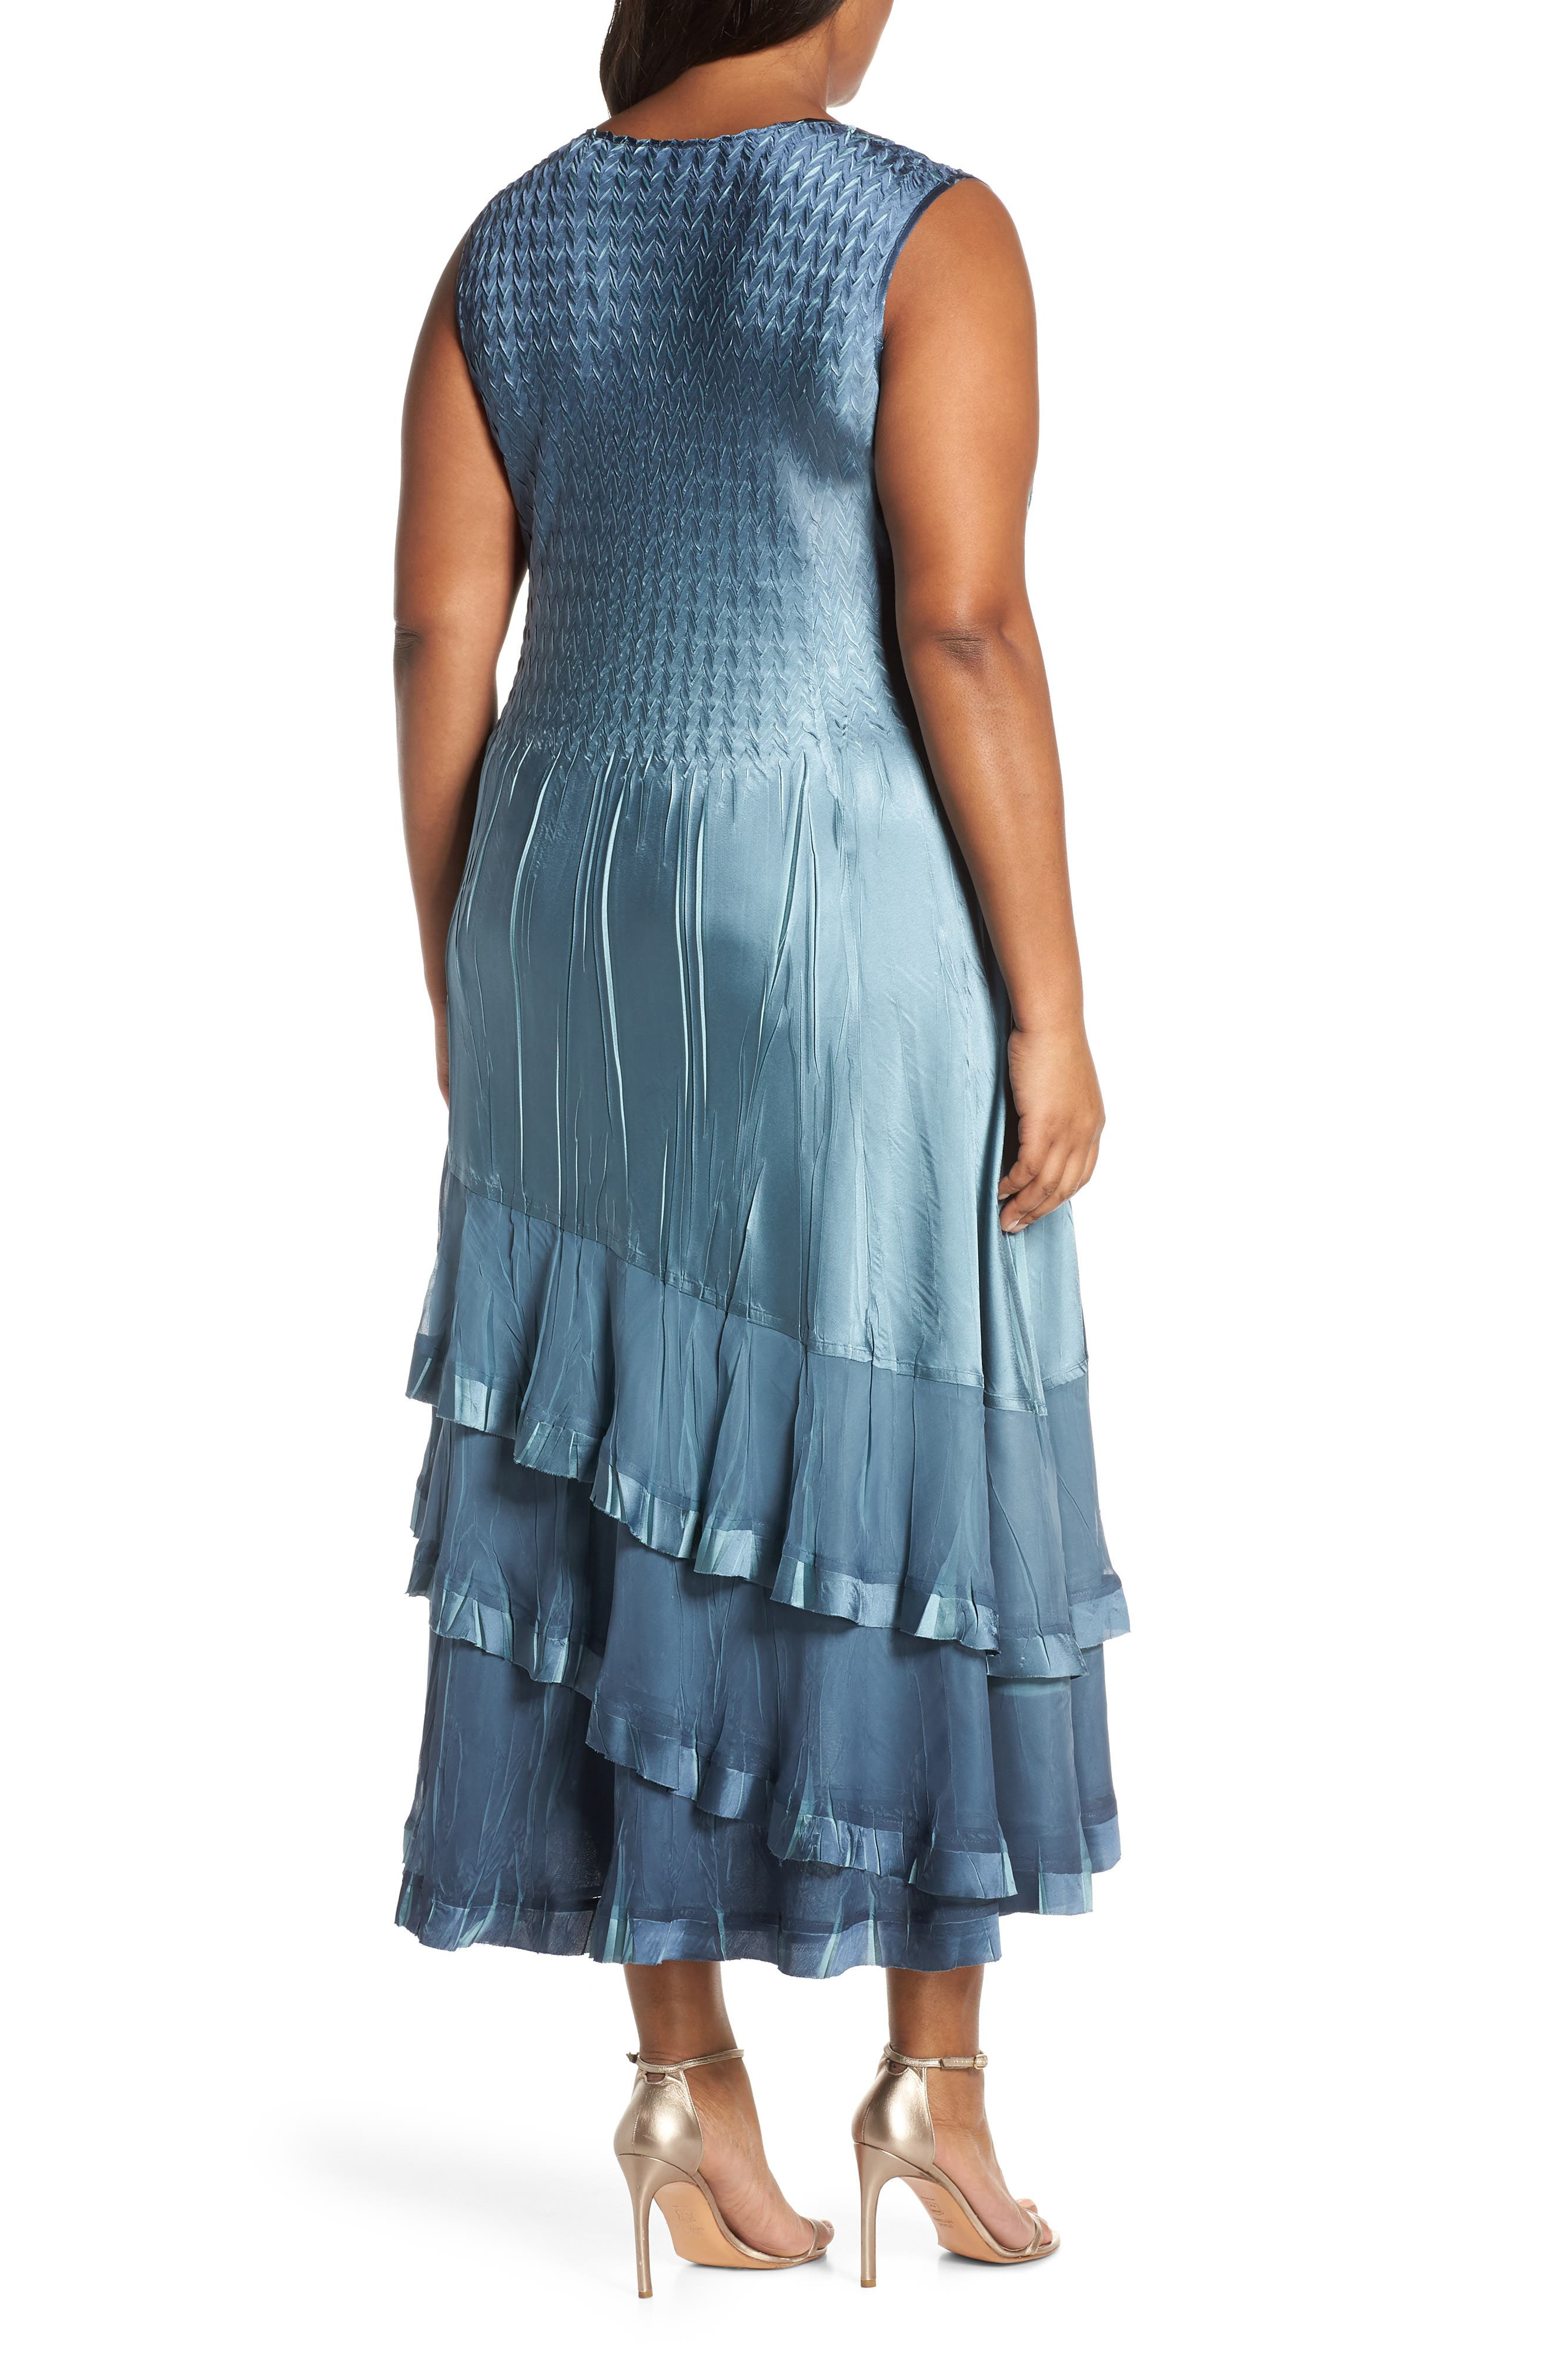 KOMAROV, Charmeuse Cocktail Dress with Jacket, Alternate thumbnail 5, color, SILVER BLUE OMBRE